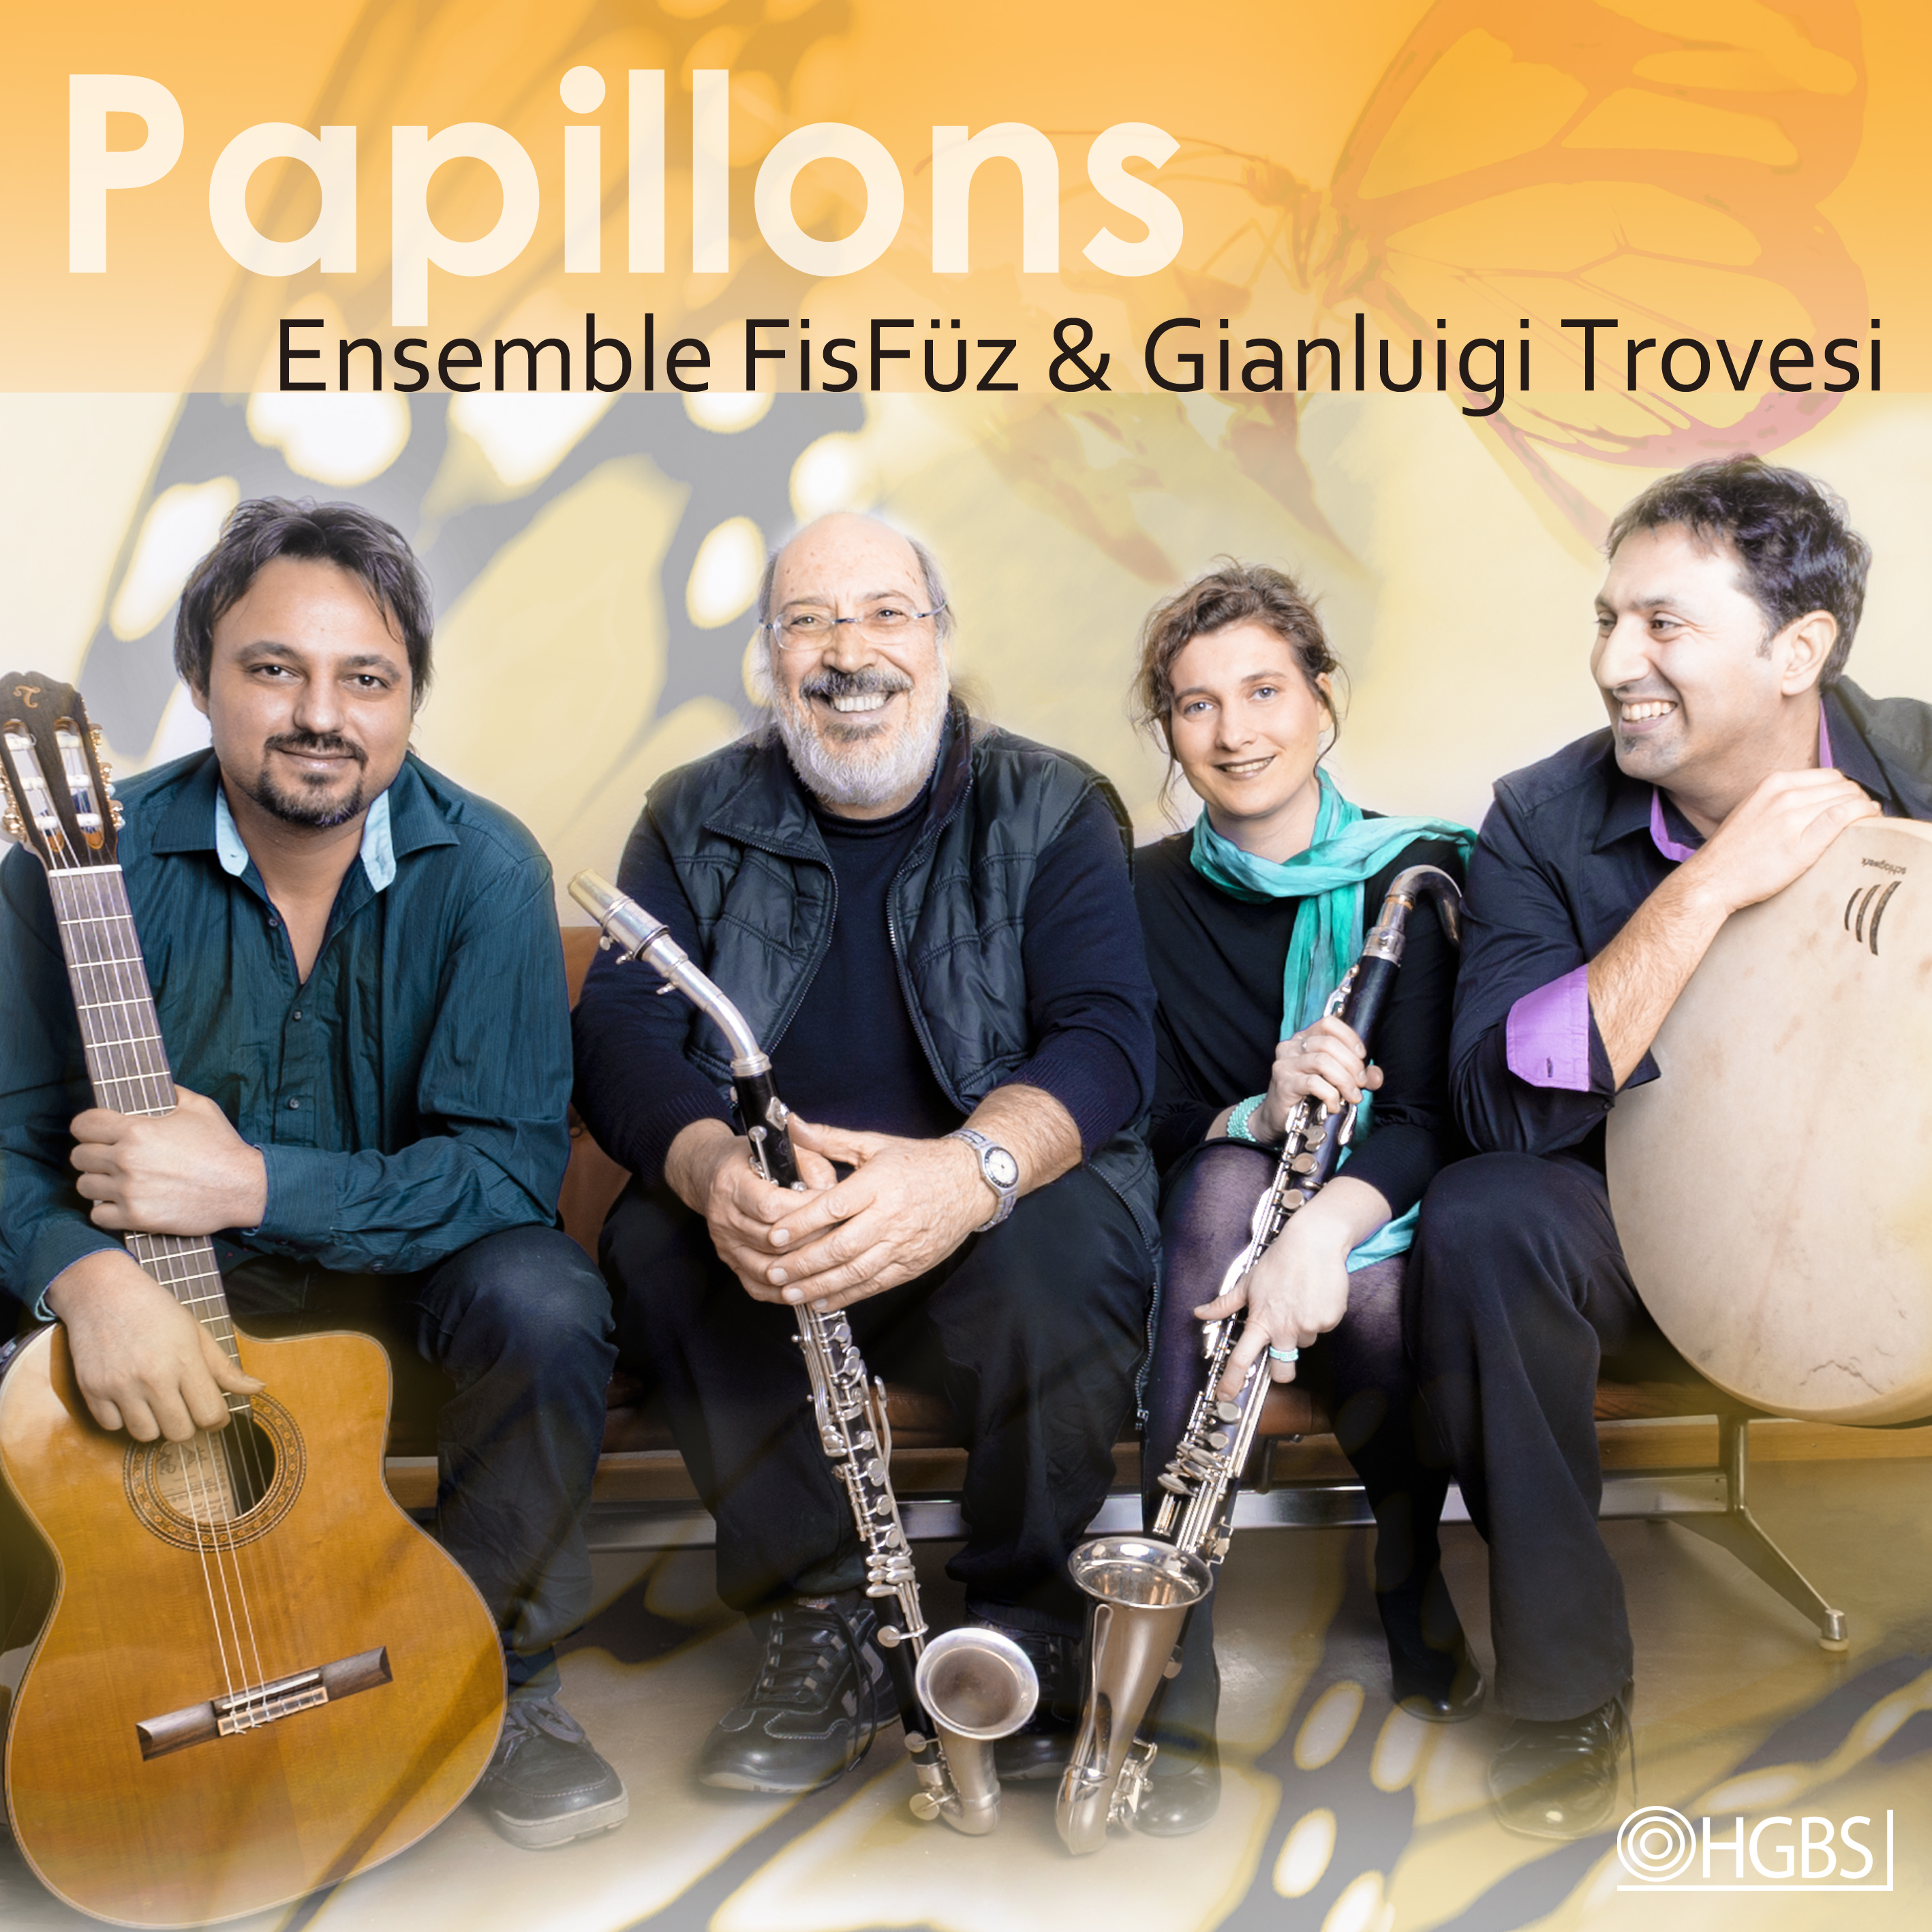 ensemble FisFz feat. Gianluigi Trovesi